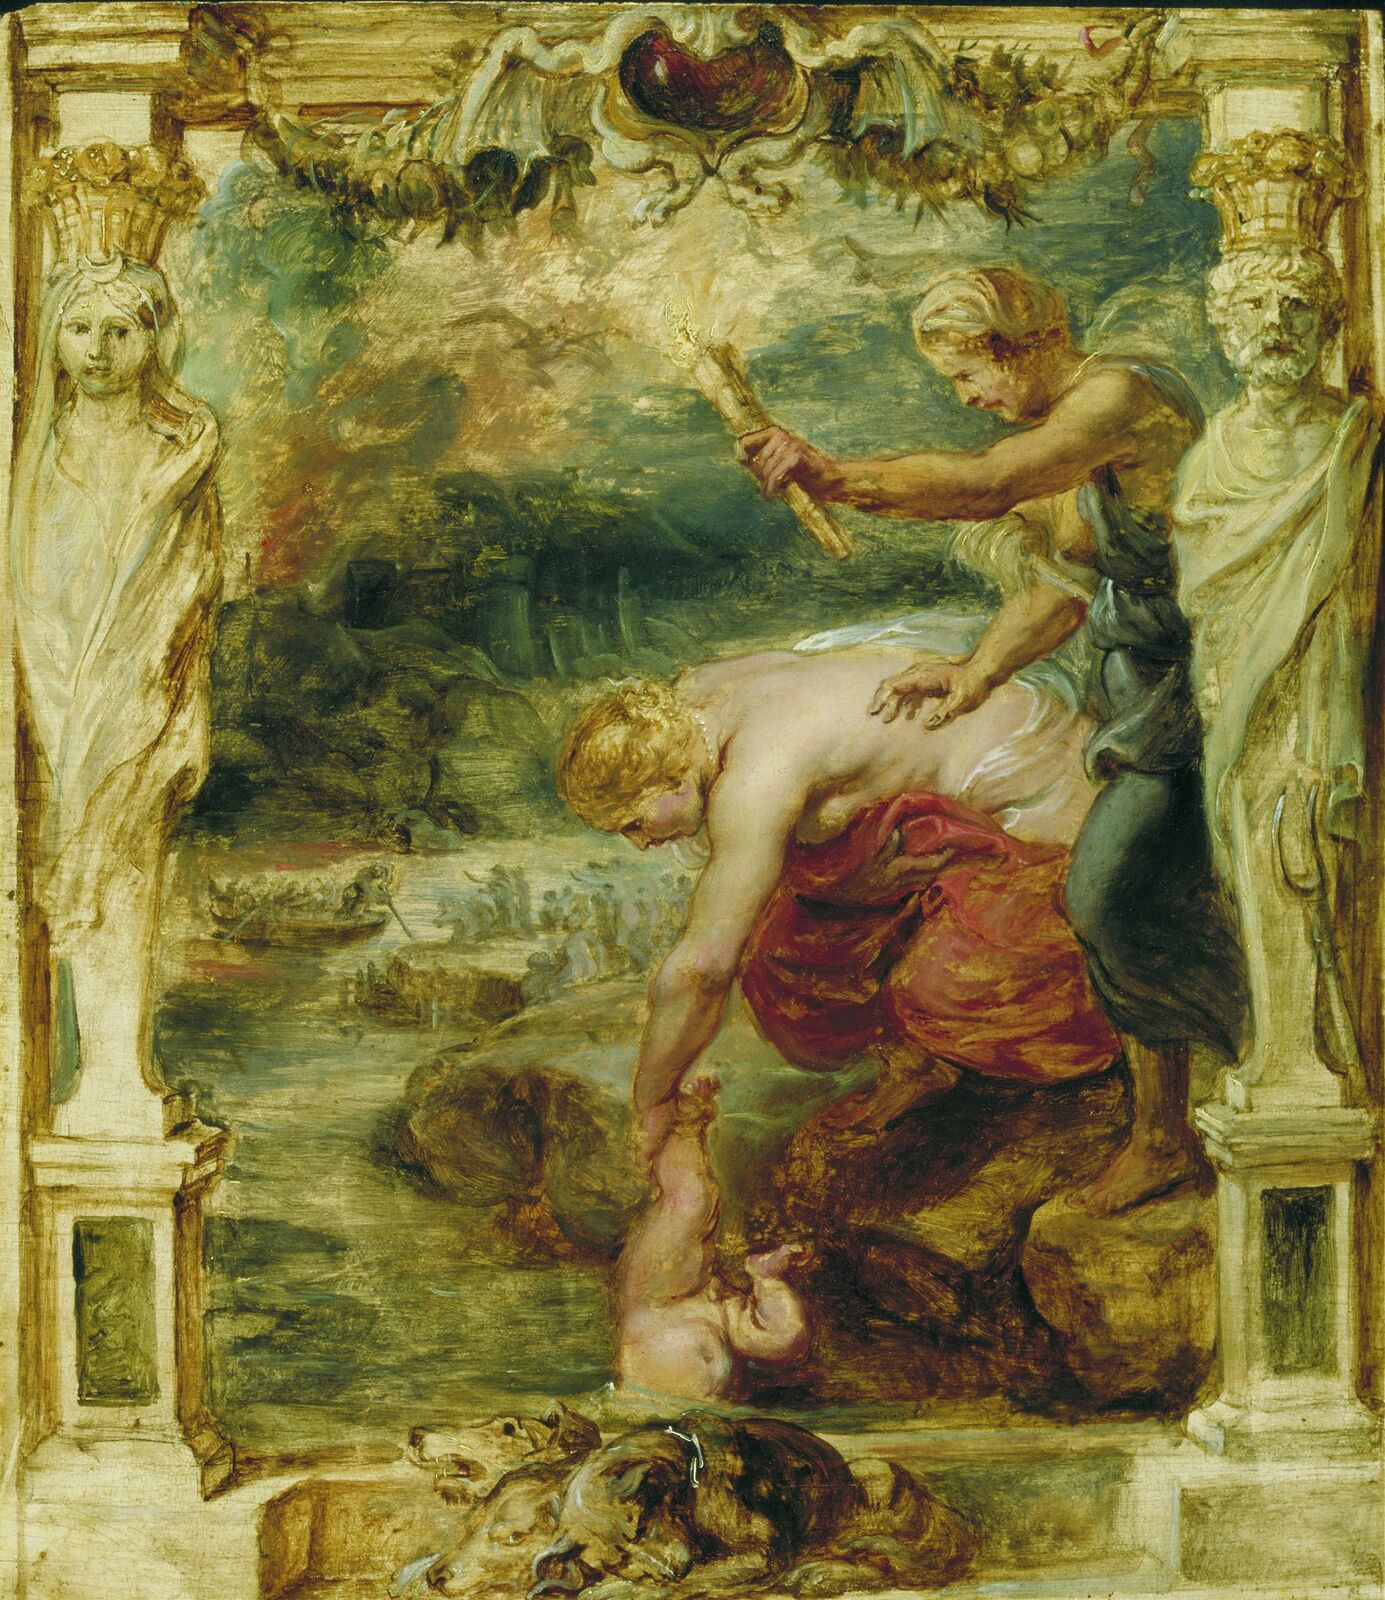 The goddess Thetis dipping the infant Achilles into the river Styx.